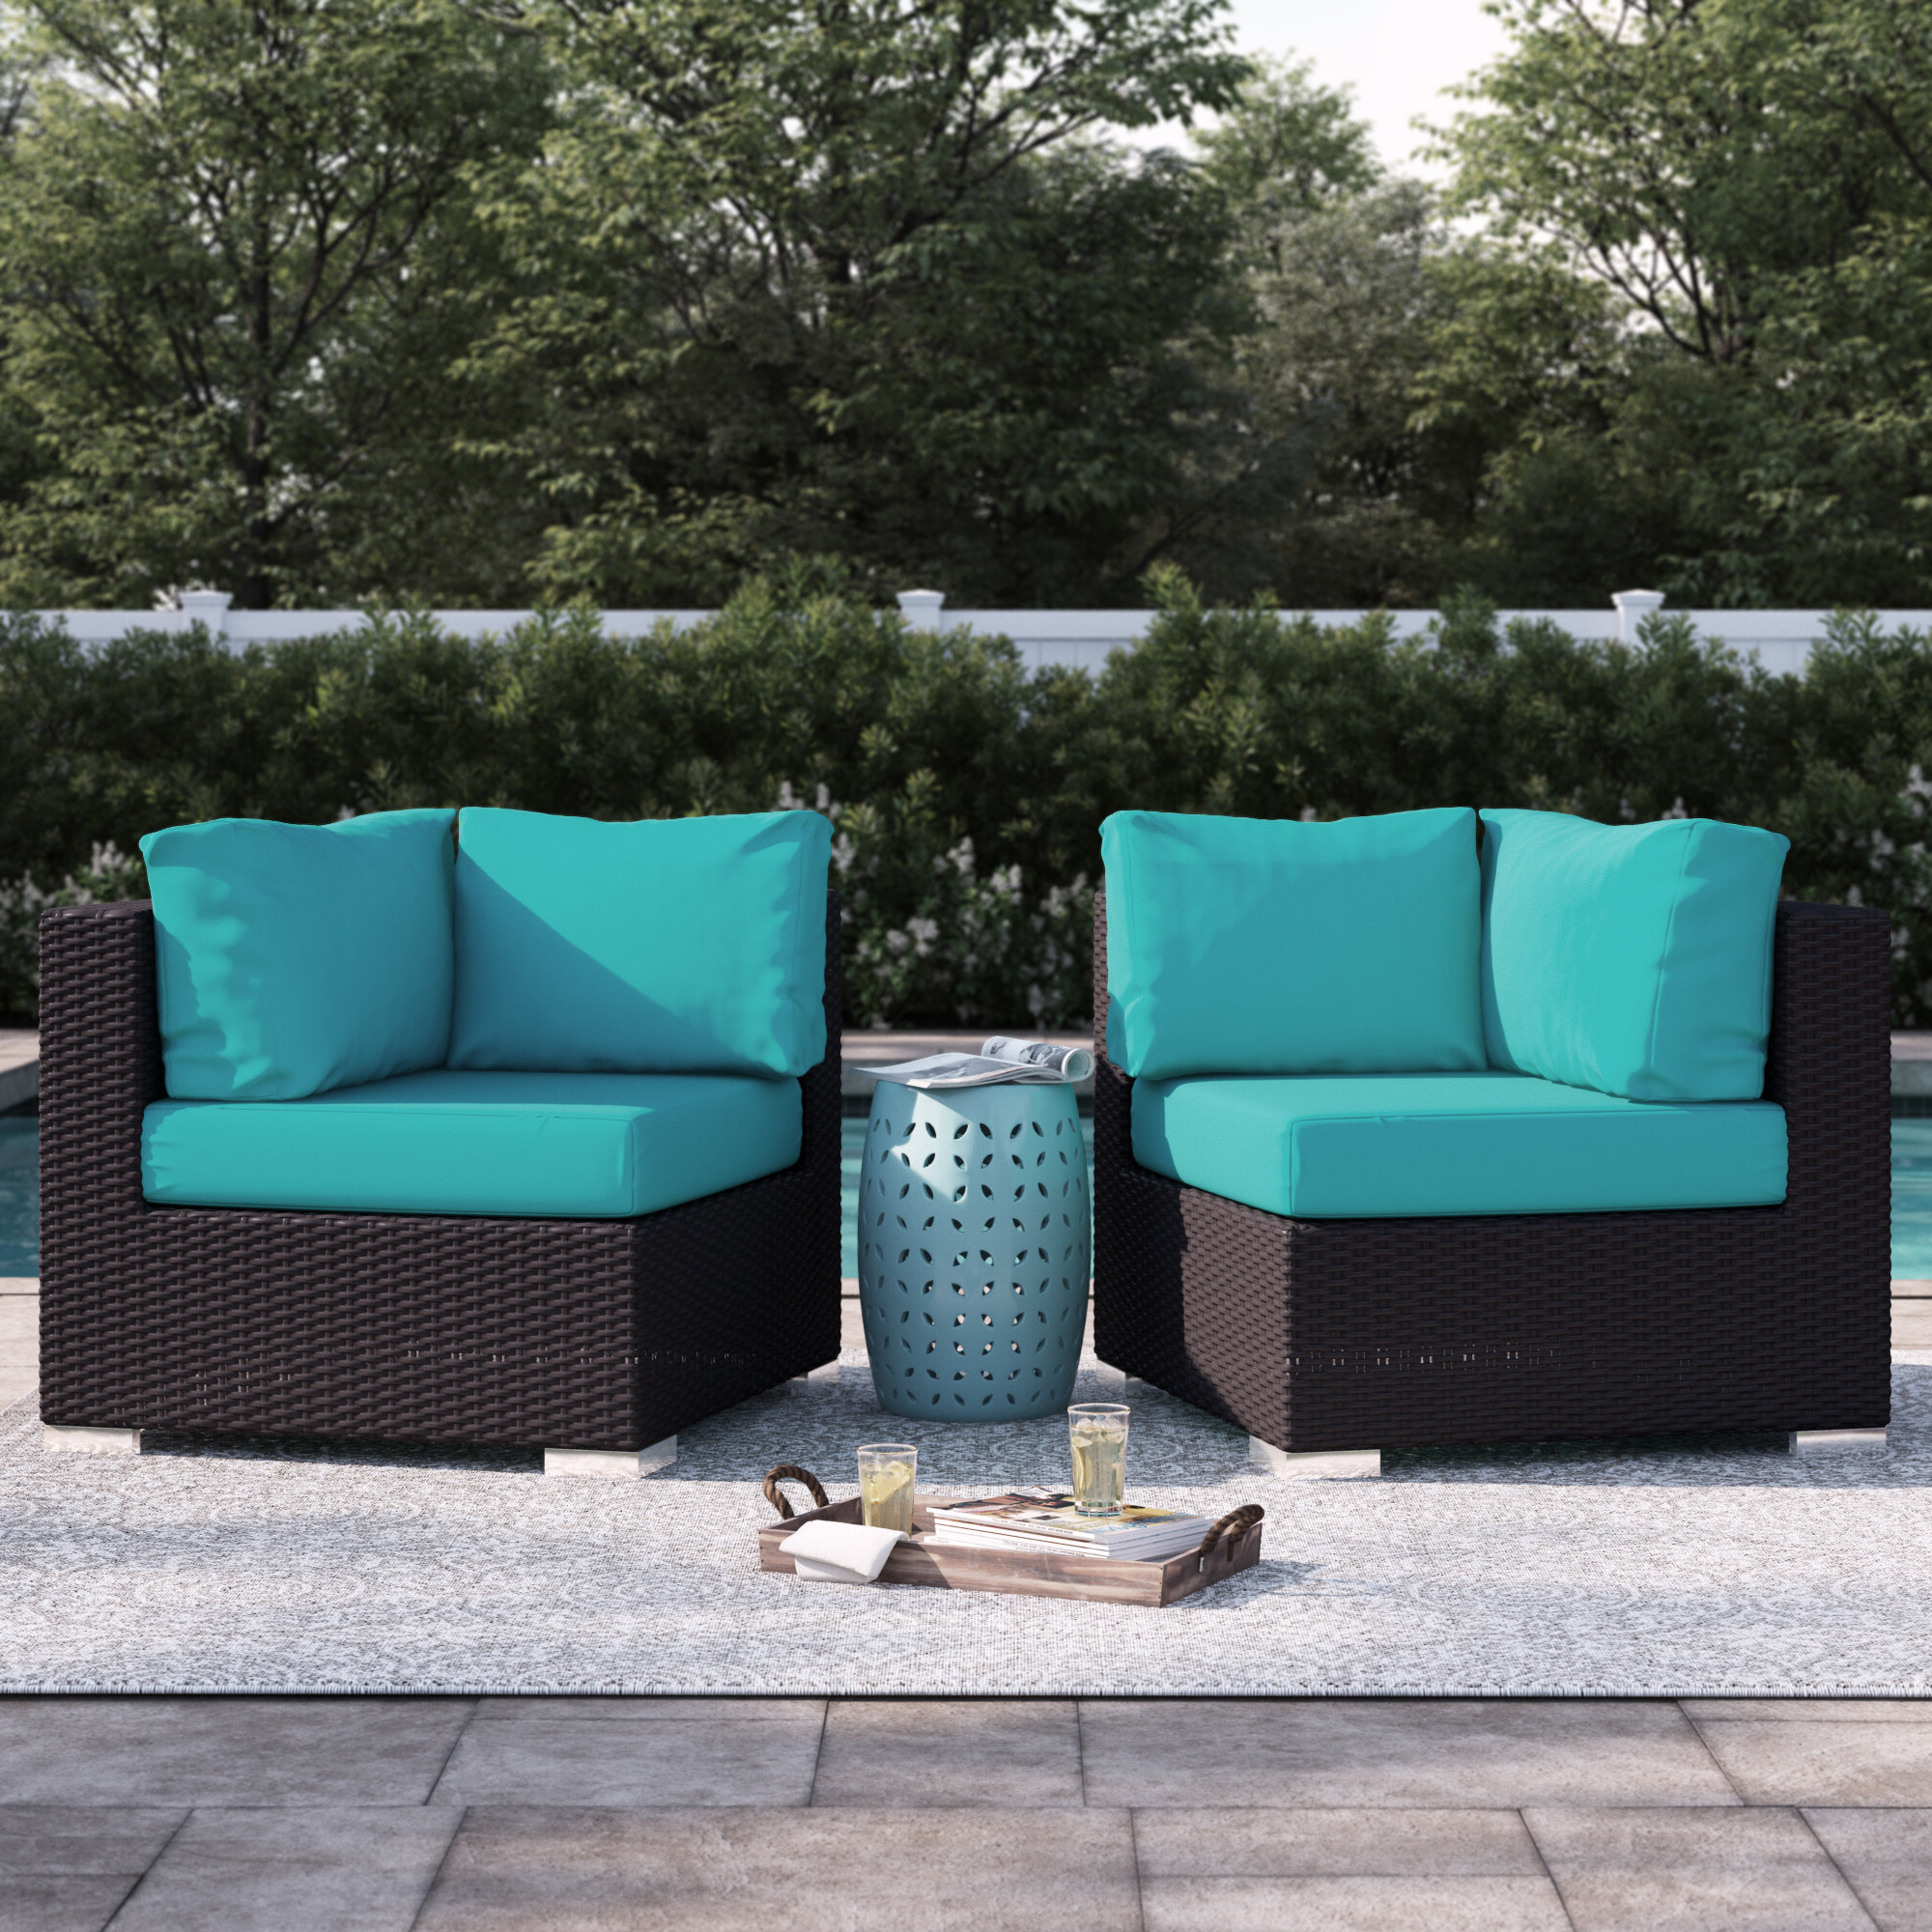 Brentwood Corner Chair With Cushions Inside Widely Used Brentwood Patio Sofas With Cushions (View 6 of 18)